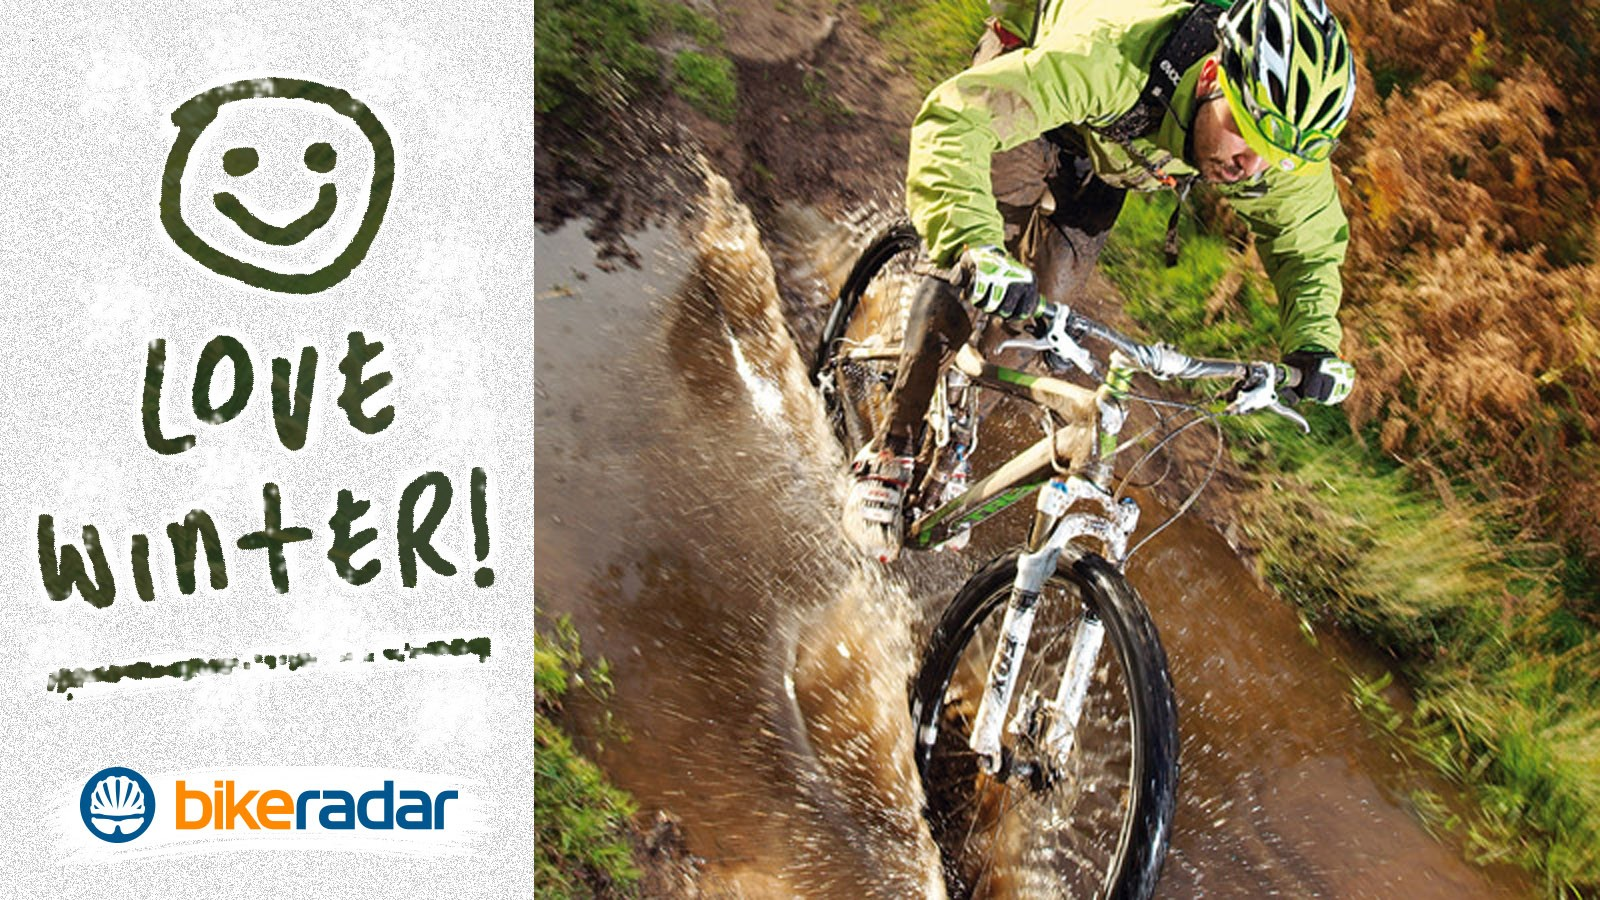 With the right techniques you'll conquer winter riding